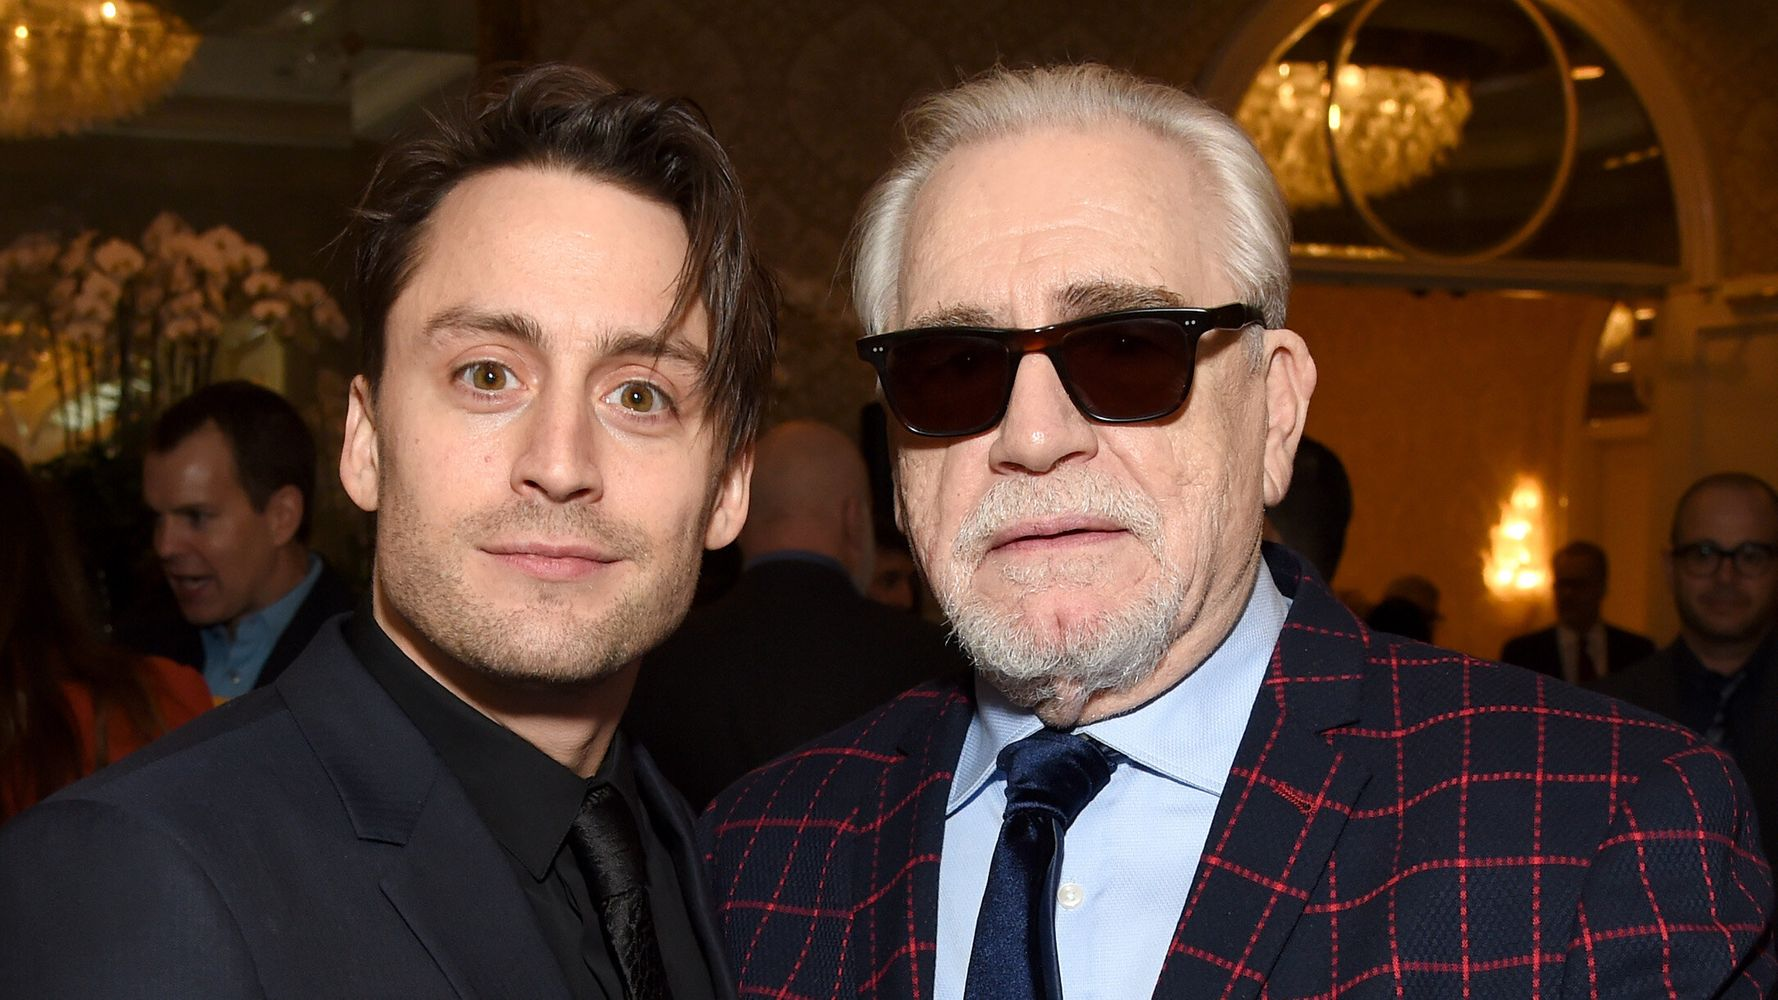 Here's Why Brian Cox Wears Sunglasses To Every Awards Show